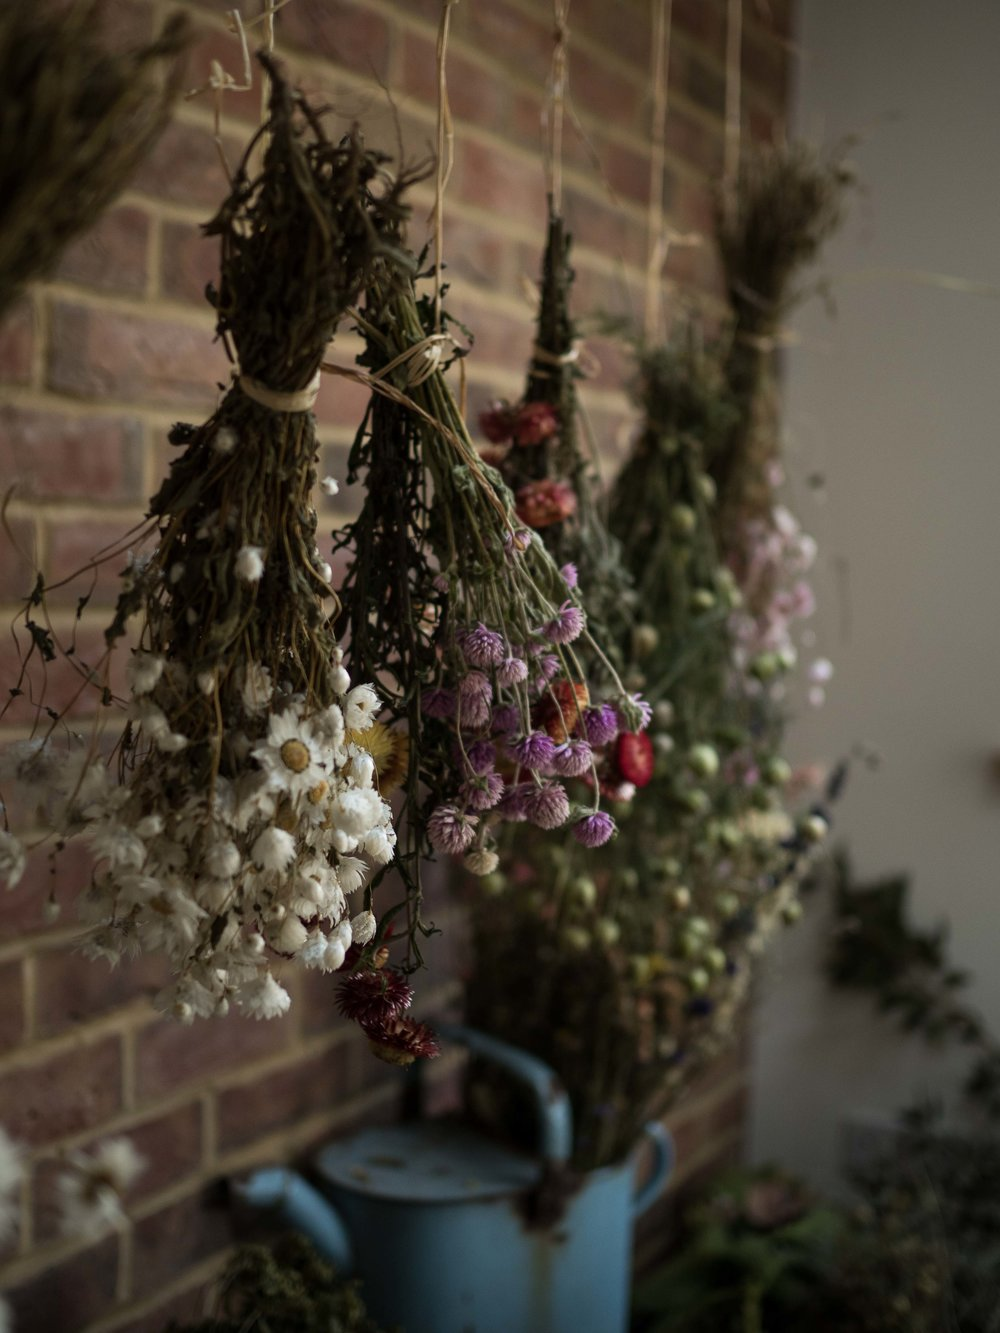 Hanging dried flowers wreath workshop